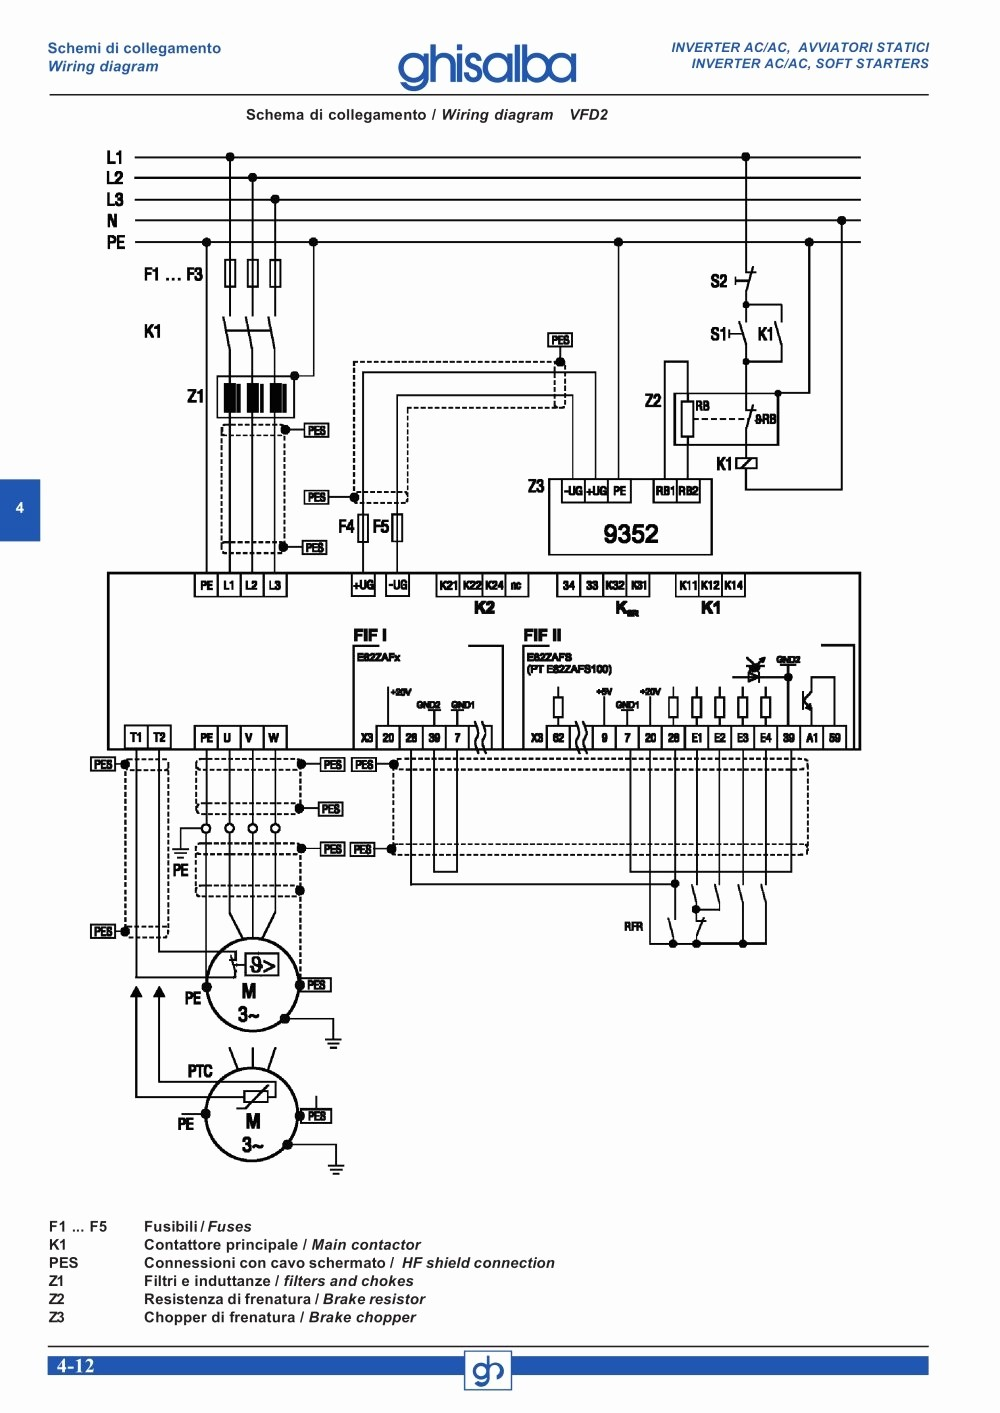 abb ach550 wiring diagram new